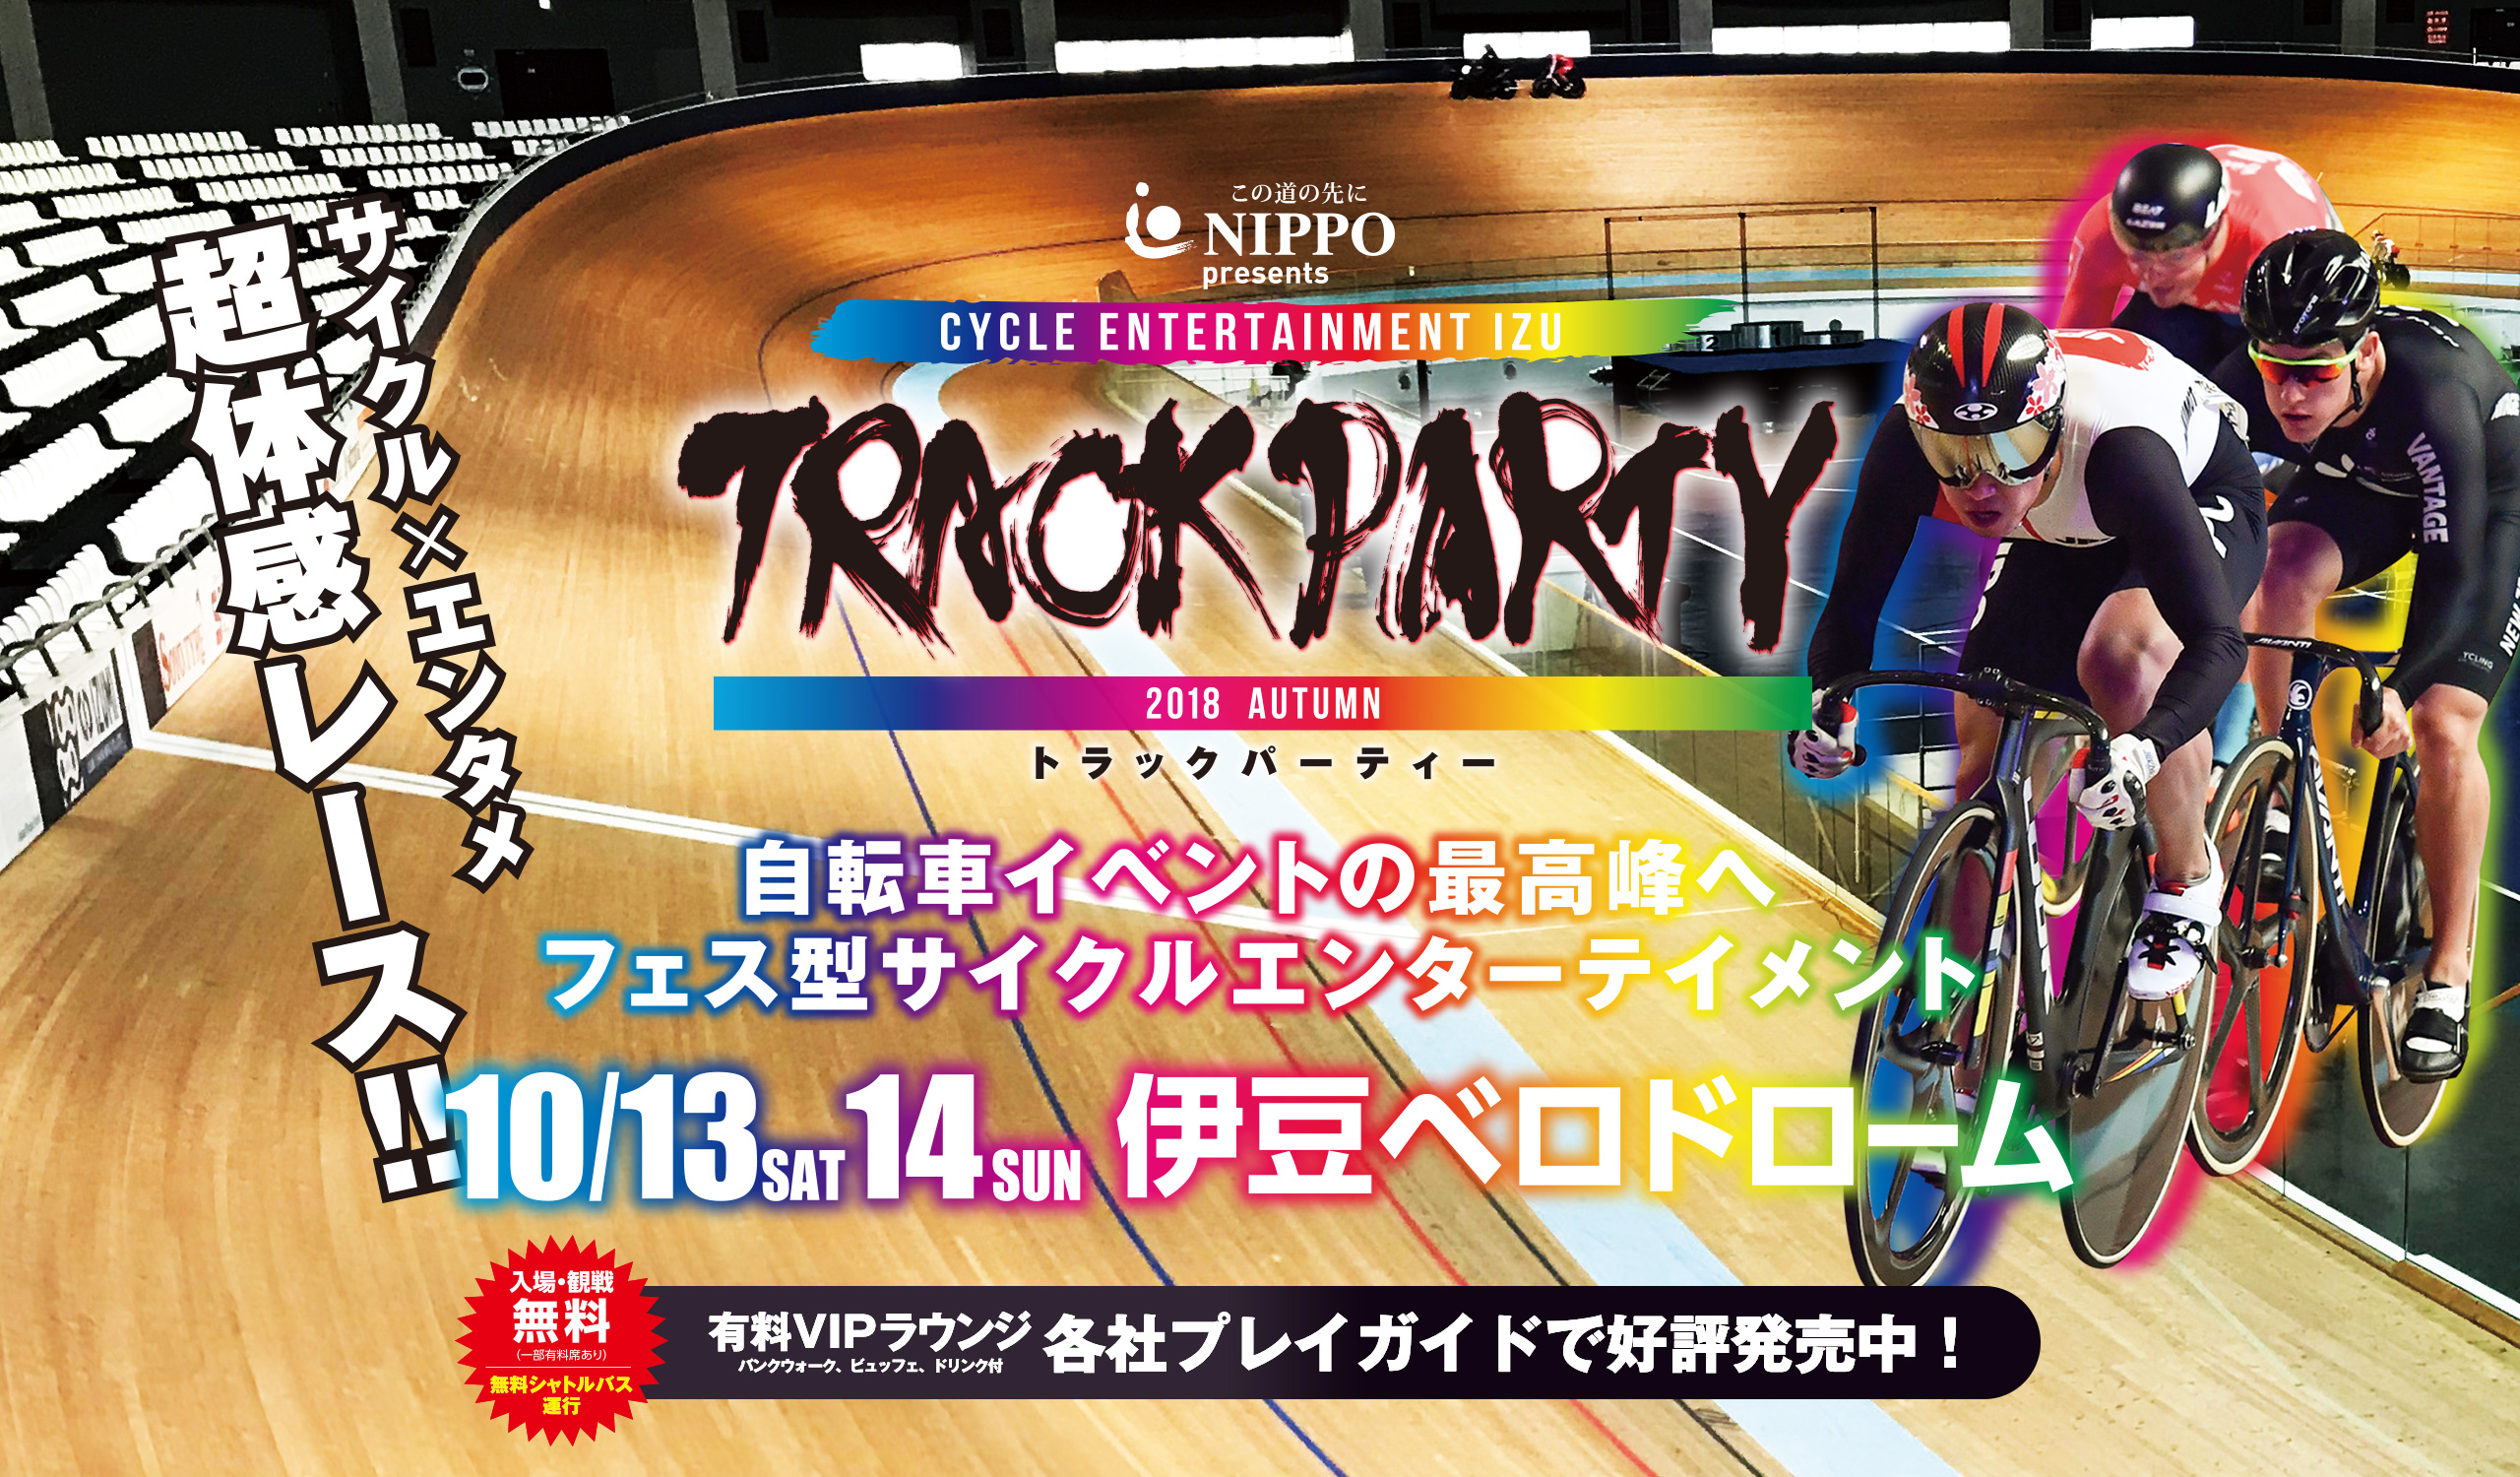 TRACK PARTY